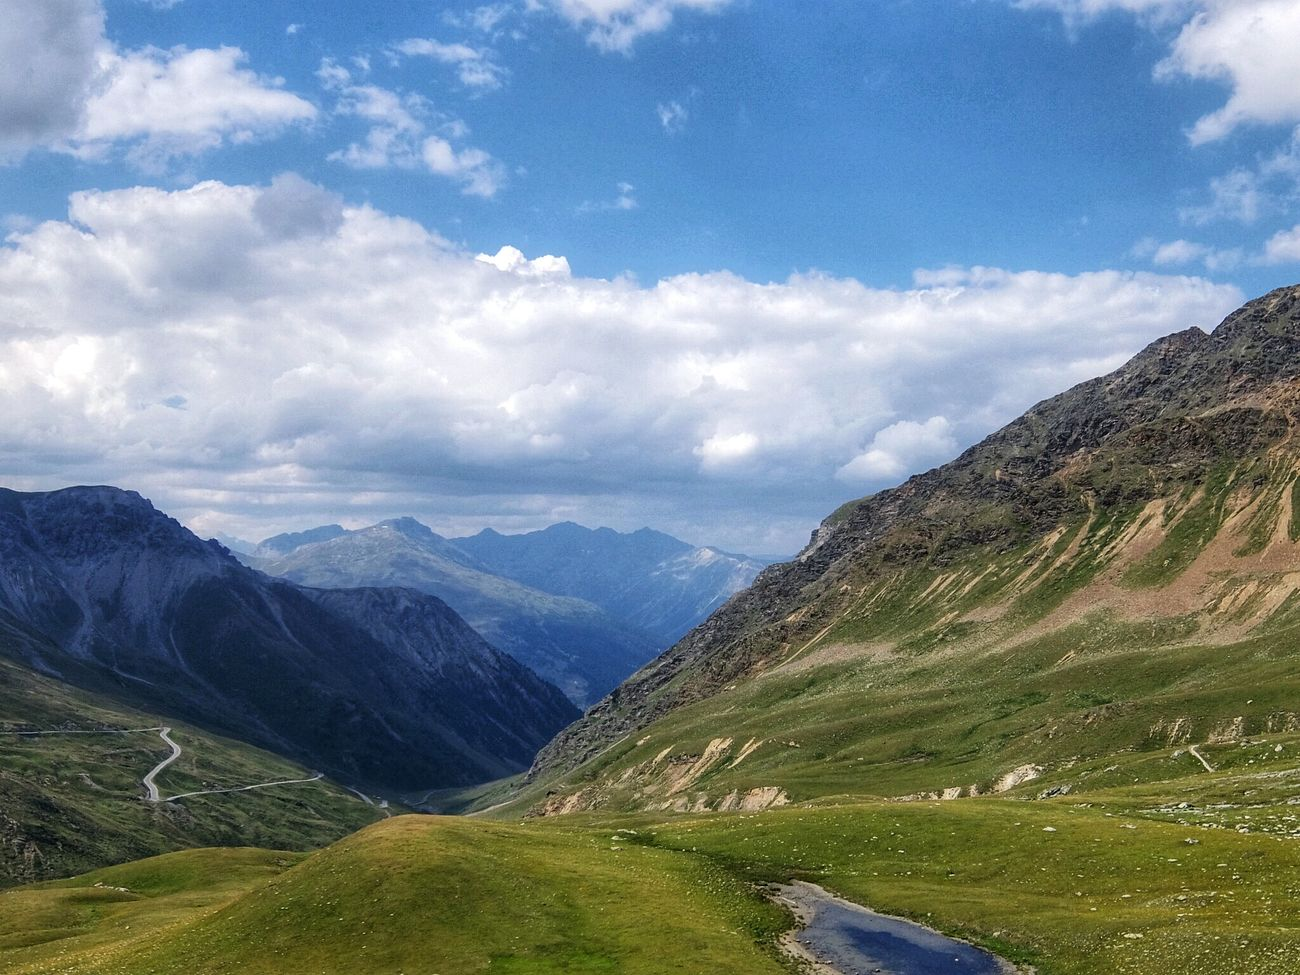 Passo dello Stelvio / Stilfser Joch — the Italian side. The mountain road passes through the Stelvio / Stilfser Joch national park. Stelvio Stelviopass Stilfserjoch Passo Stelvio Valtellina Südtirol Mountains Alps On The Road Fujifilm